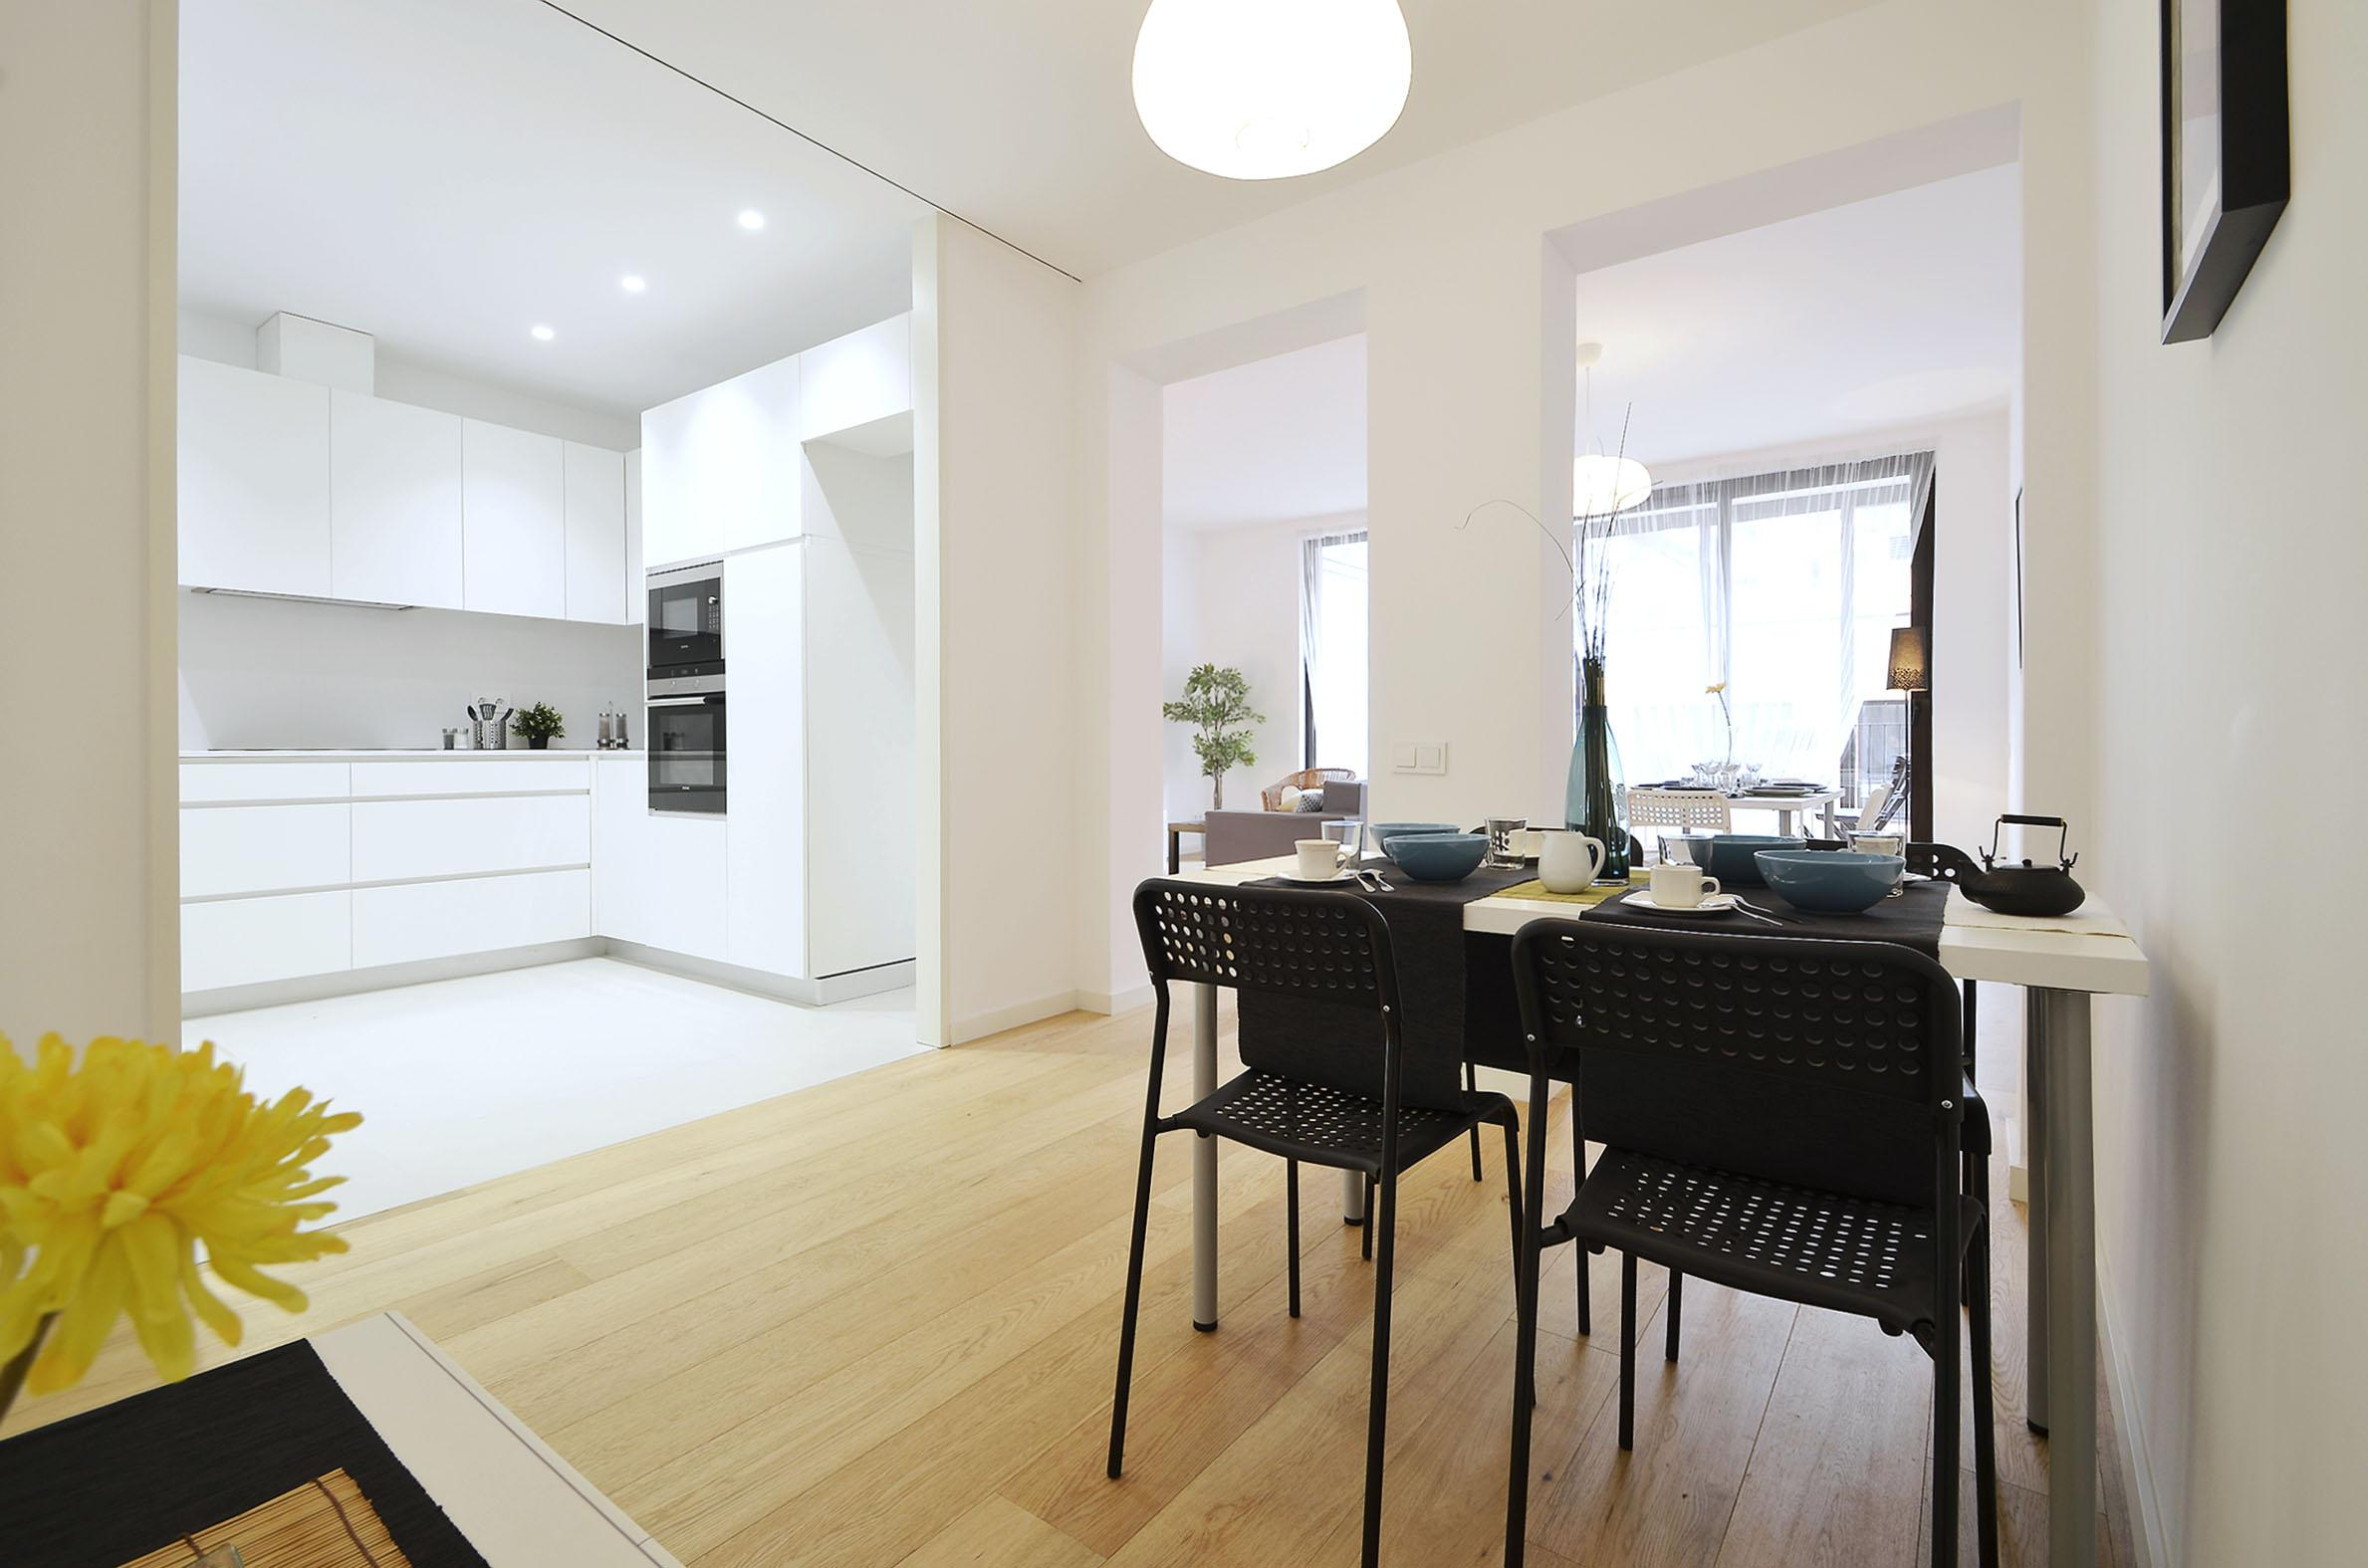 207259 Apartment for sale in Eixample, Old Left Eixample 5